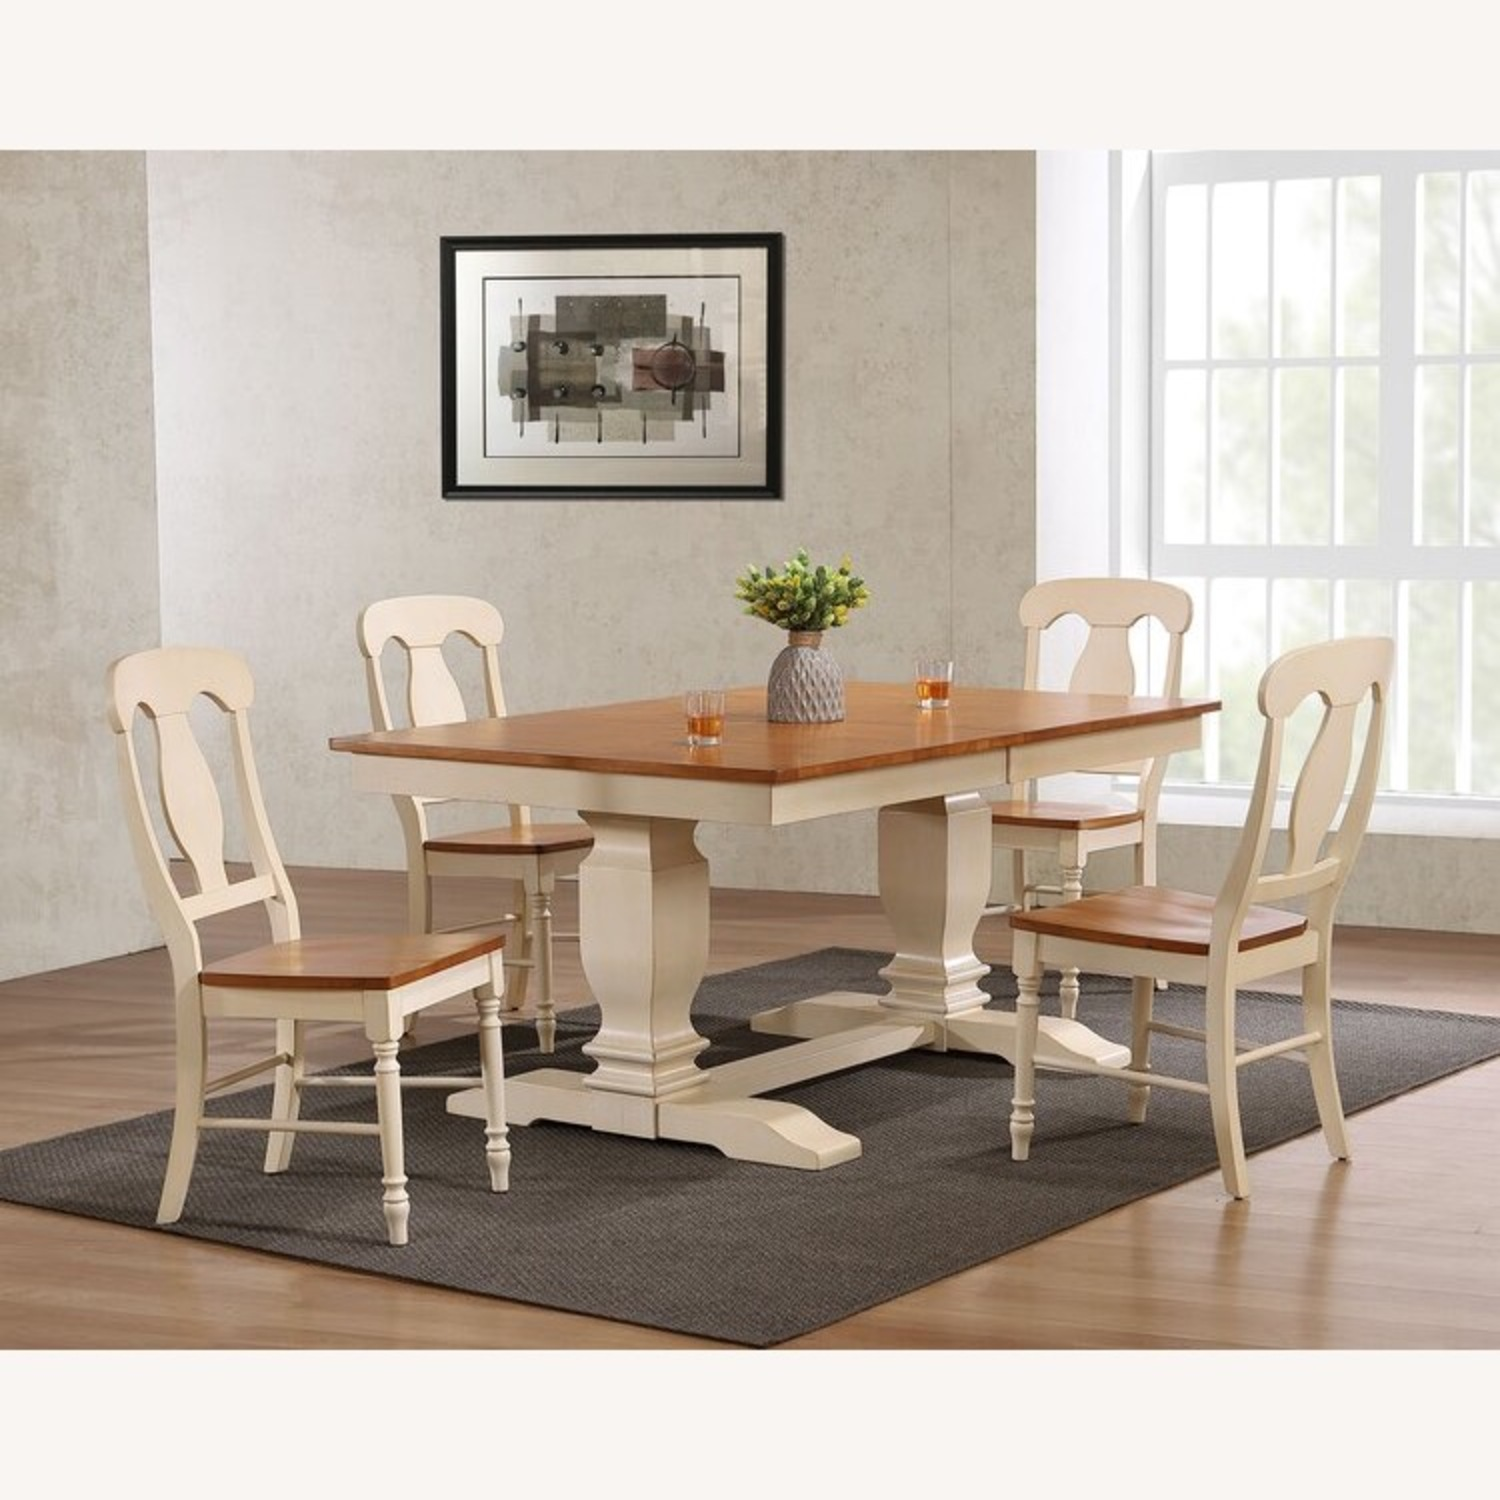 Dinettestyles Solid Wood Extension Dinnig Set - image-1